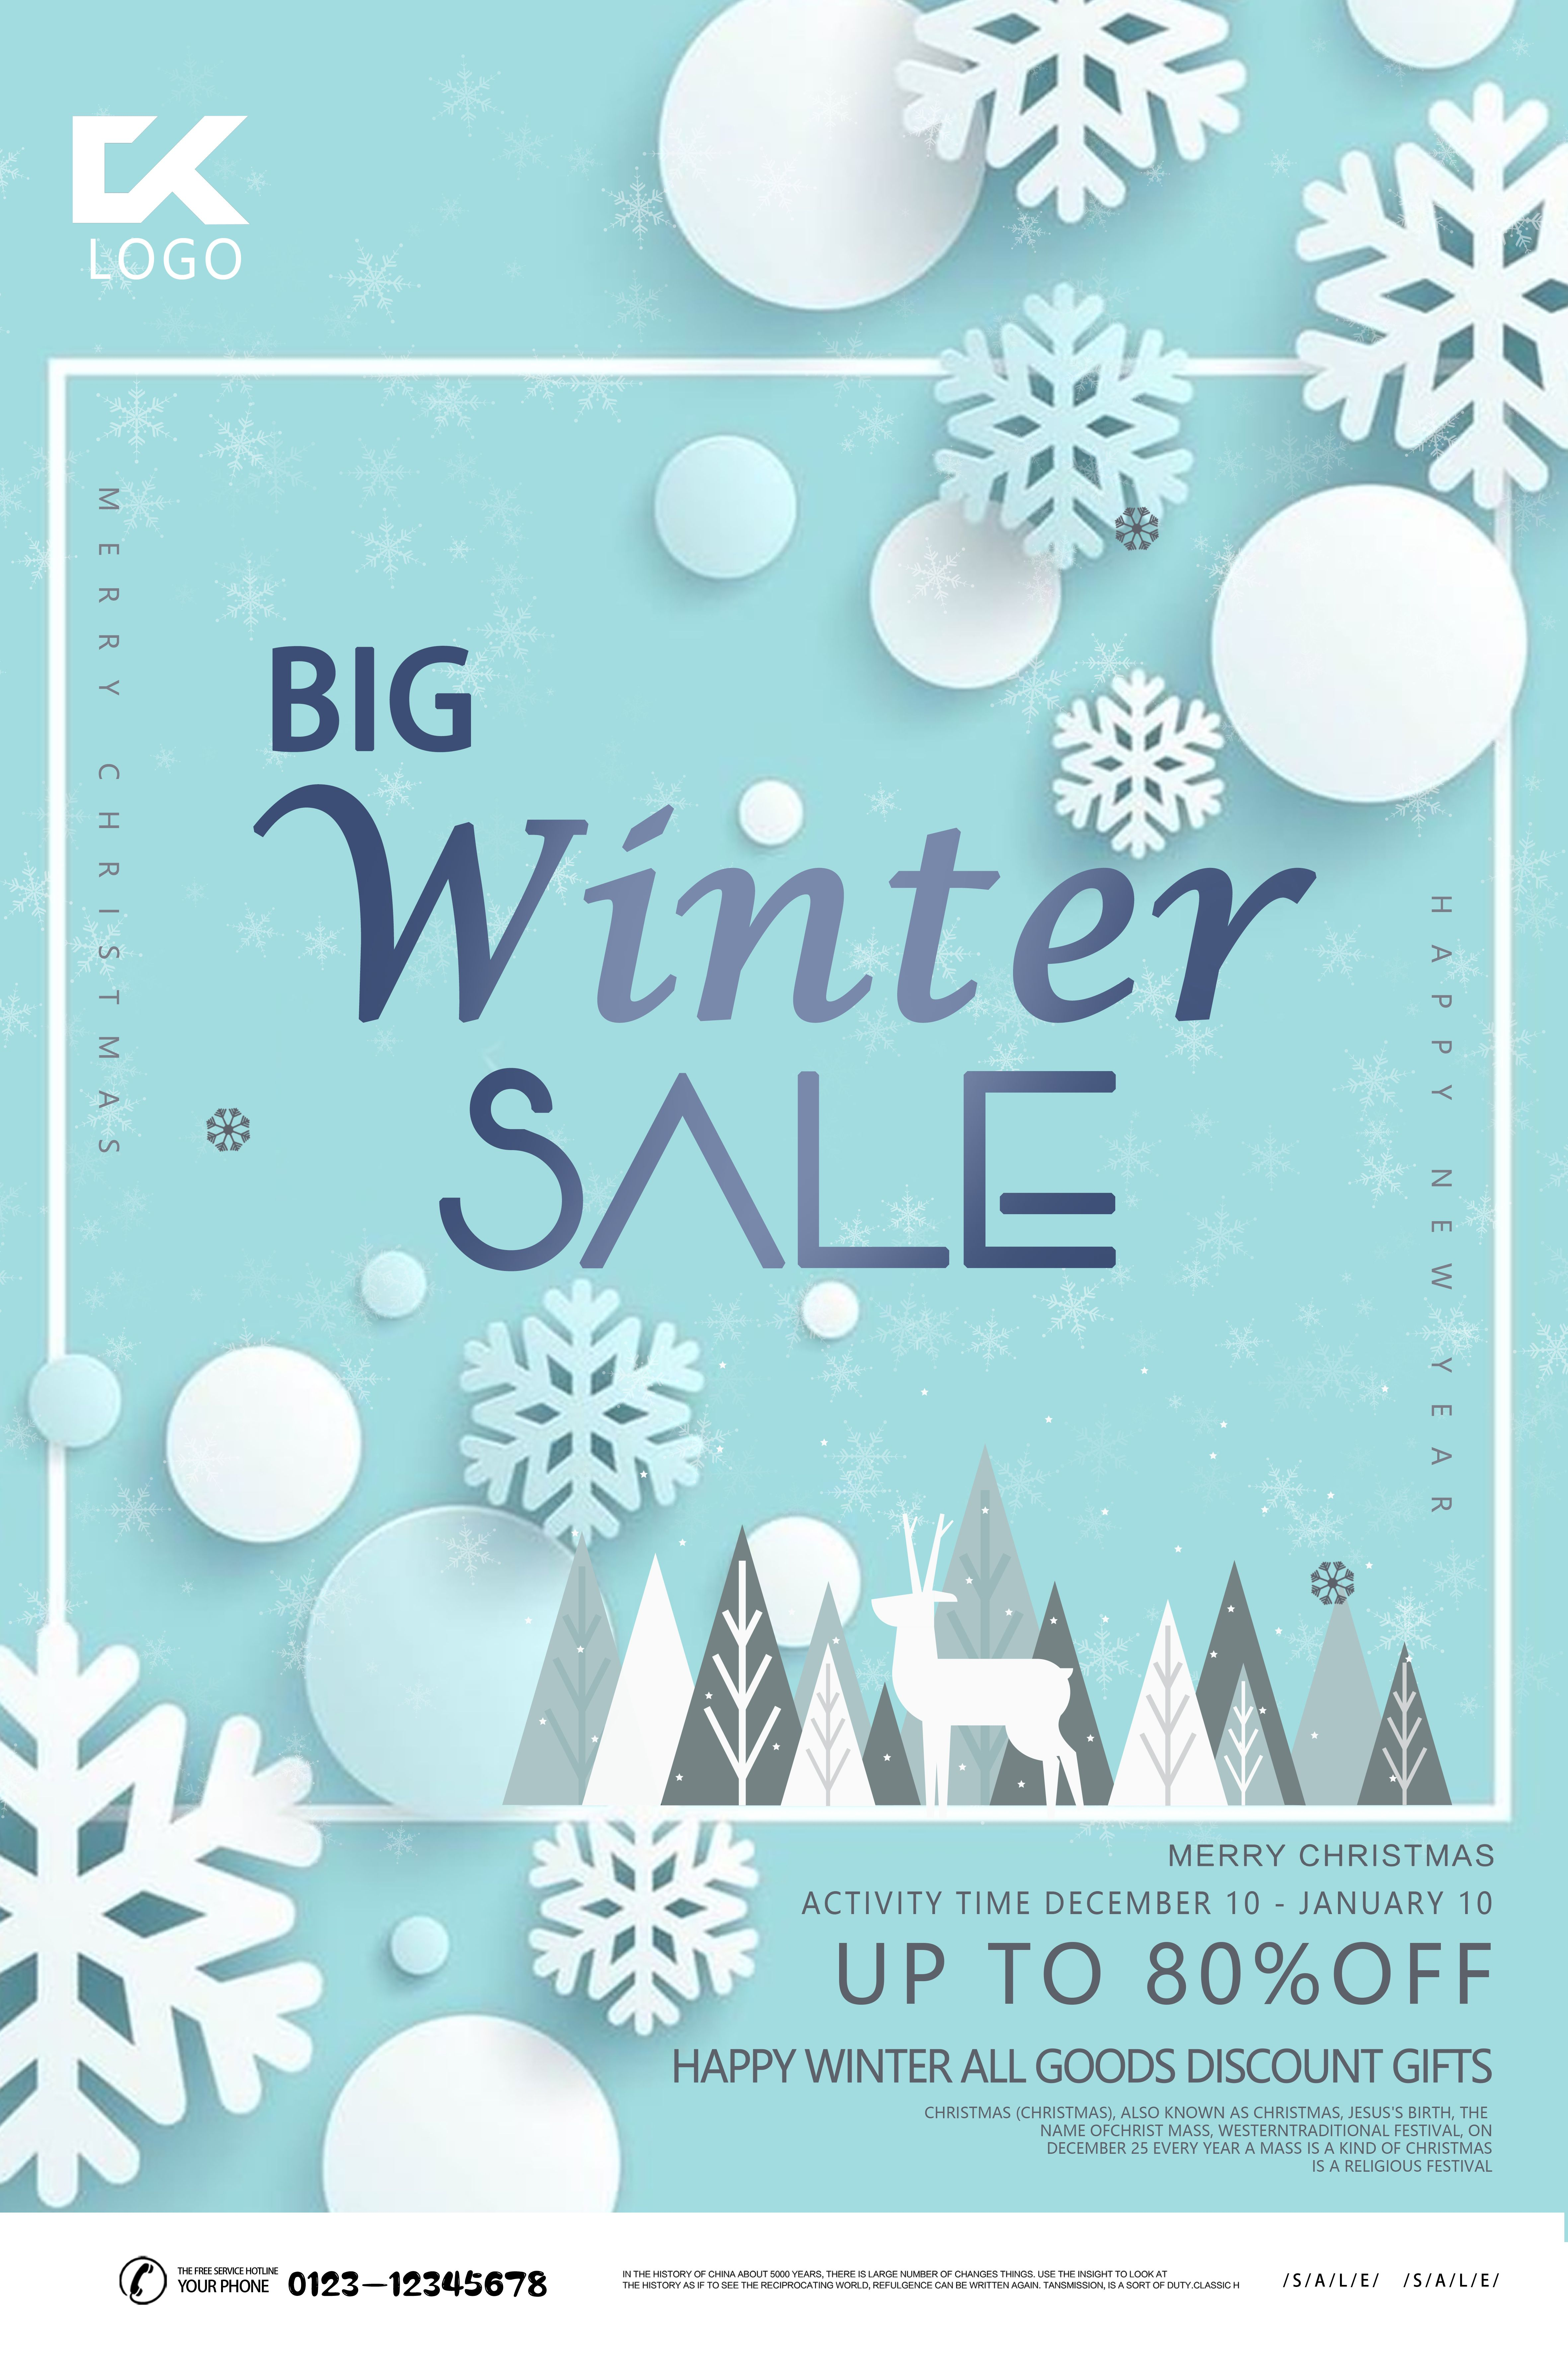 Blue Winter Promotion Discount Offer Sales Promotion Poster Template Psd Free Download Pikbest Invitation Card Format Flyer Design Templates Wedding Invitation Card Template